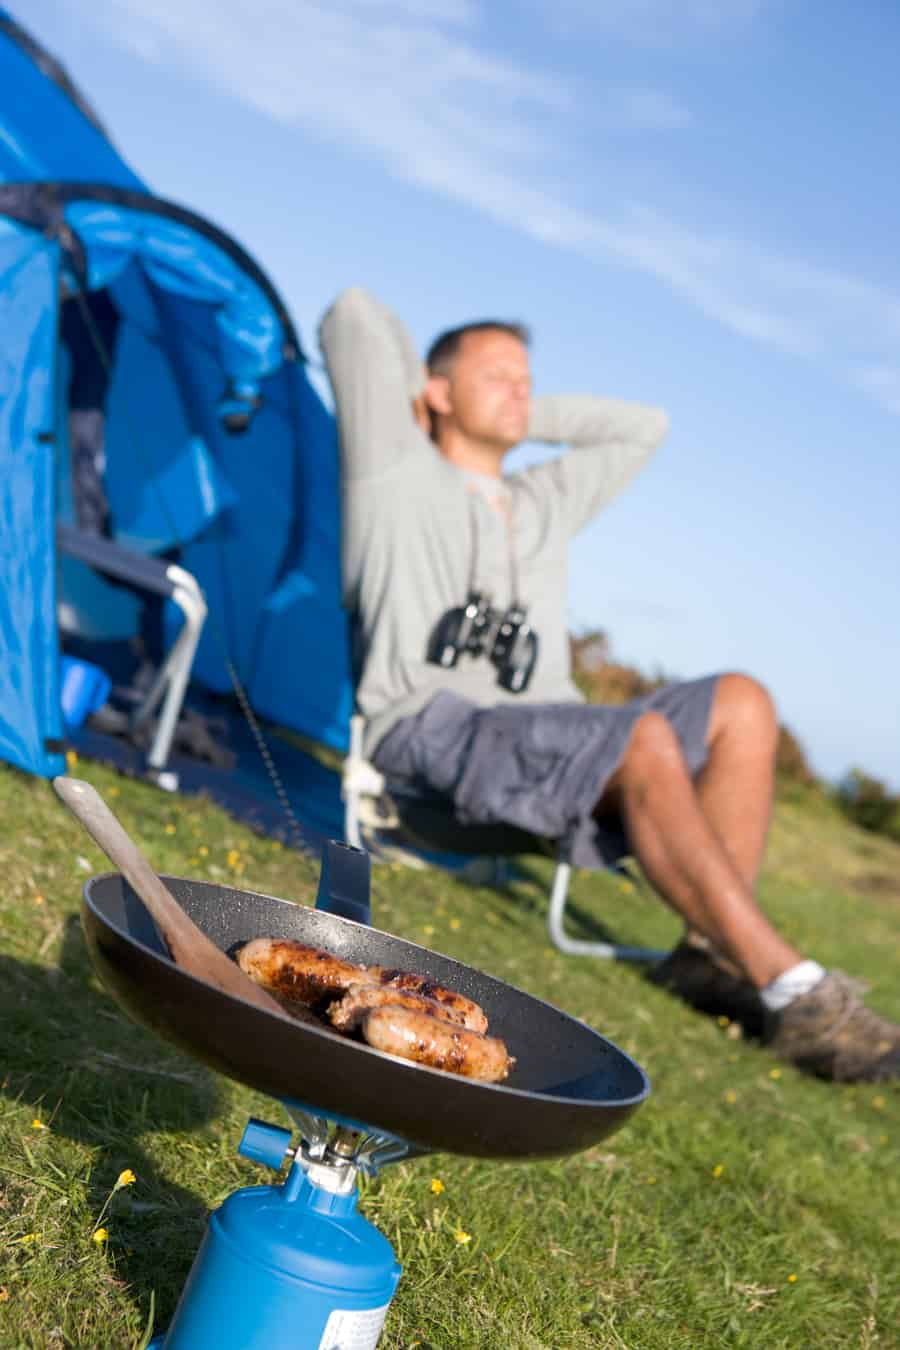 a man camping and cooking with a portable stove